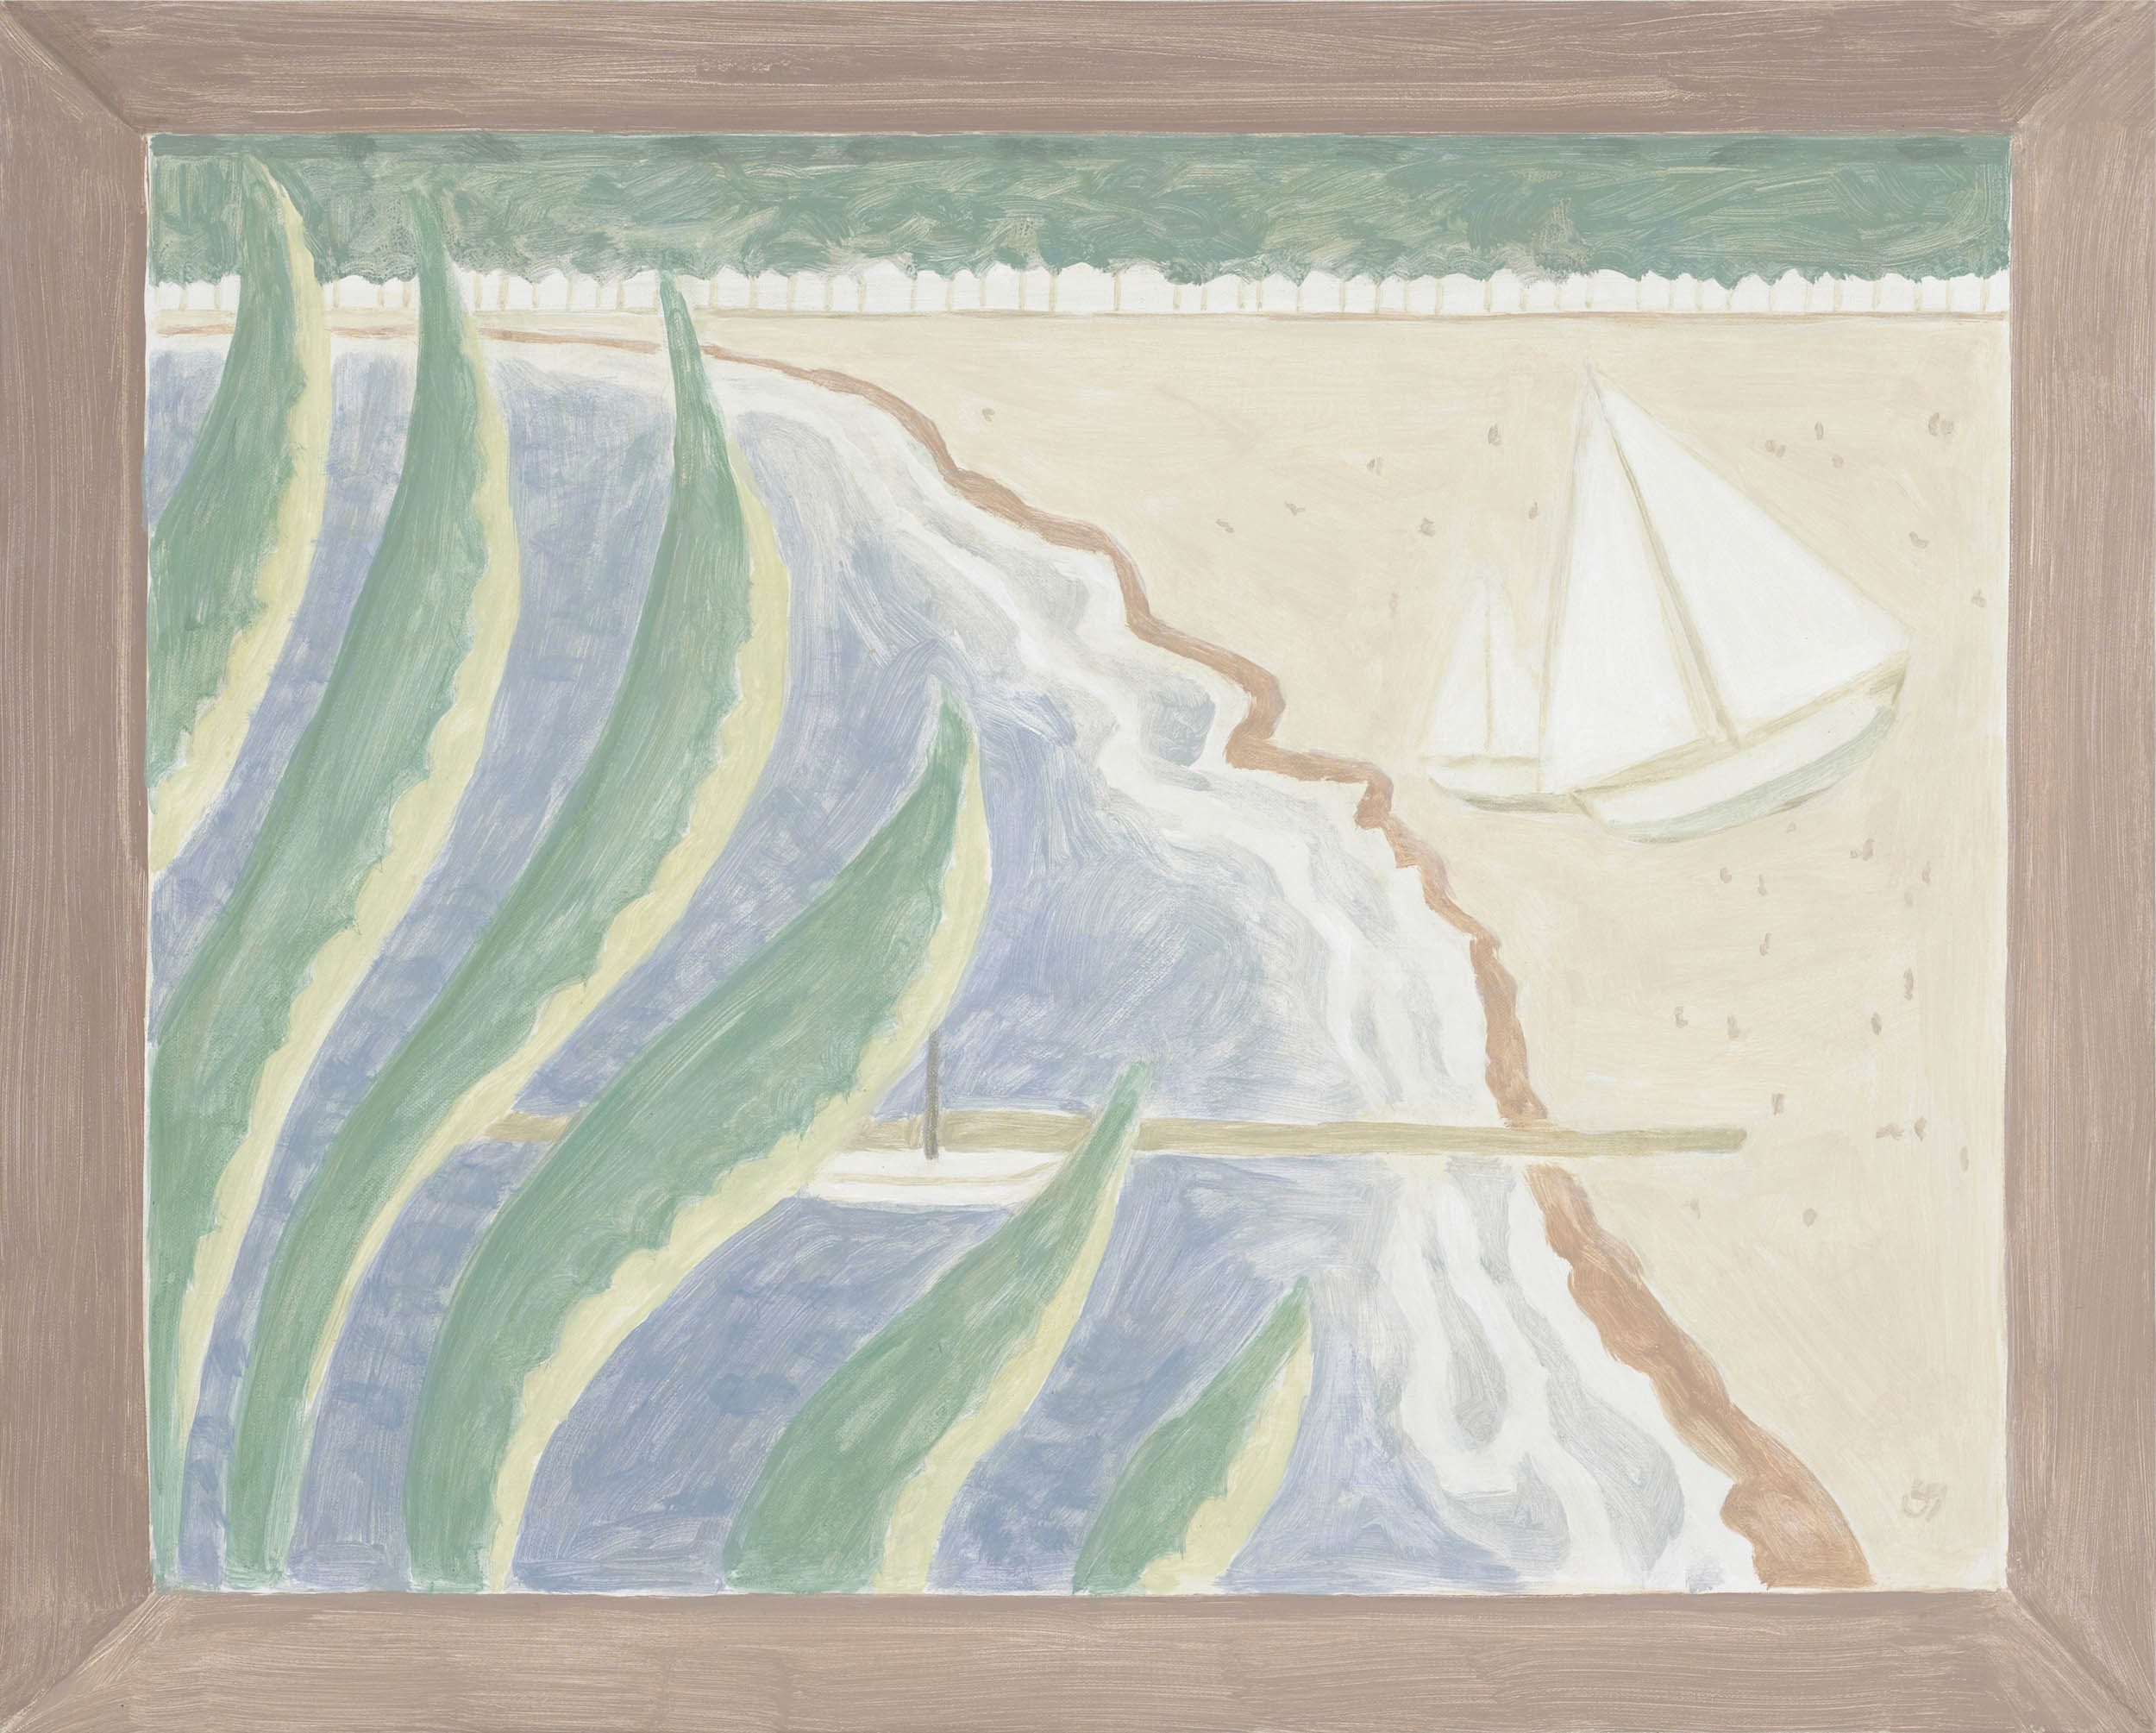 Framed Painting: Beach with Cactus, acrylic on canvas over board, 20 1/4 x 25 inches, 2012.